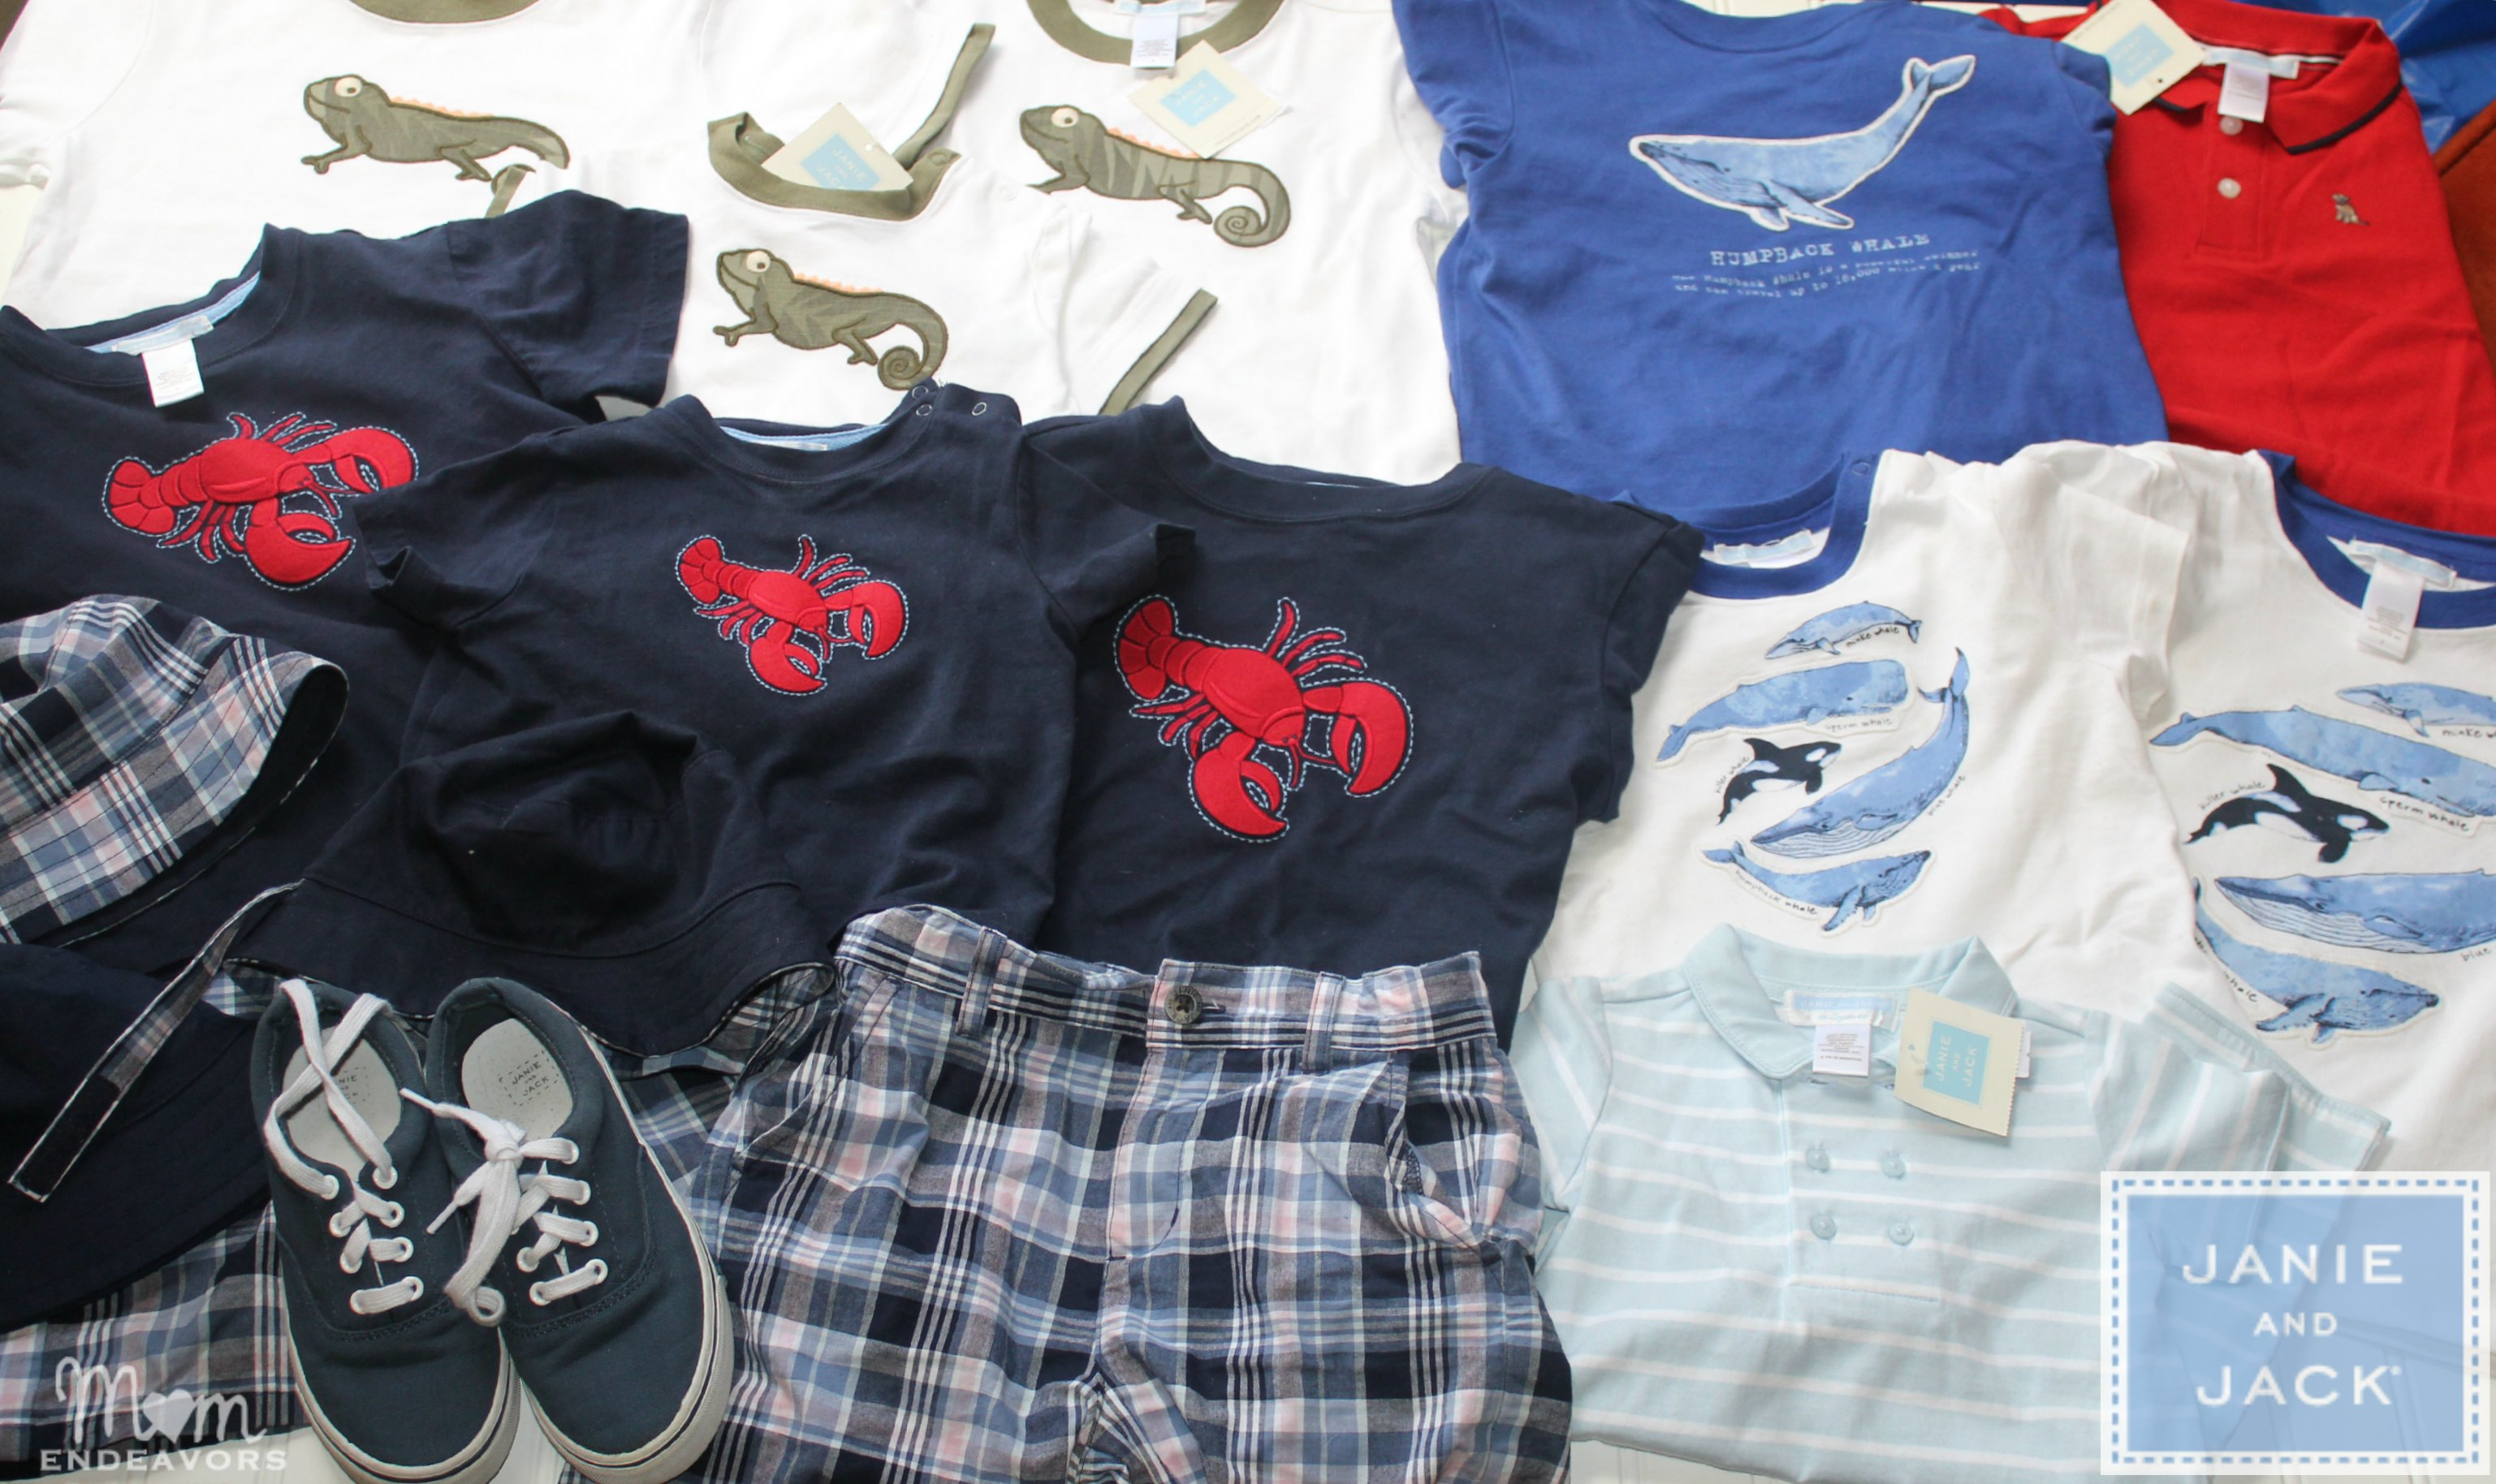 a1eda3dee Adorable outfit finds at the Janie and Jack Semi-Annual Sale